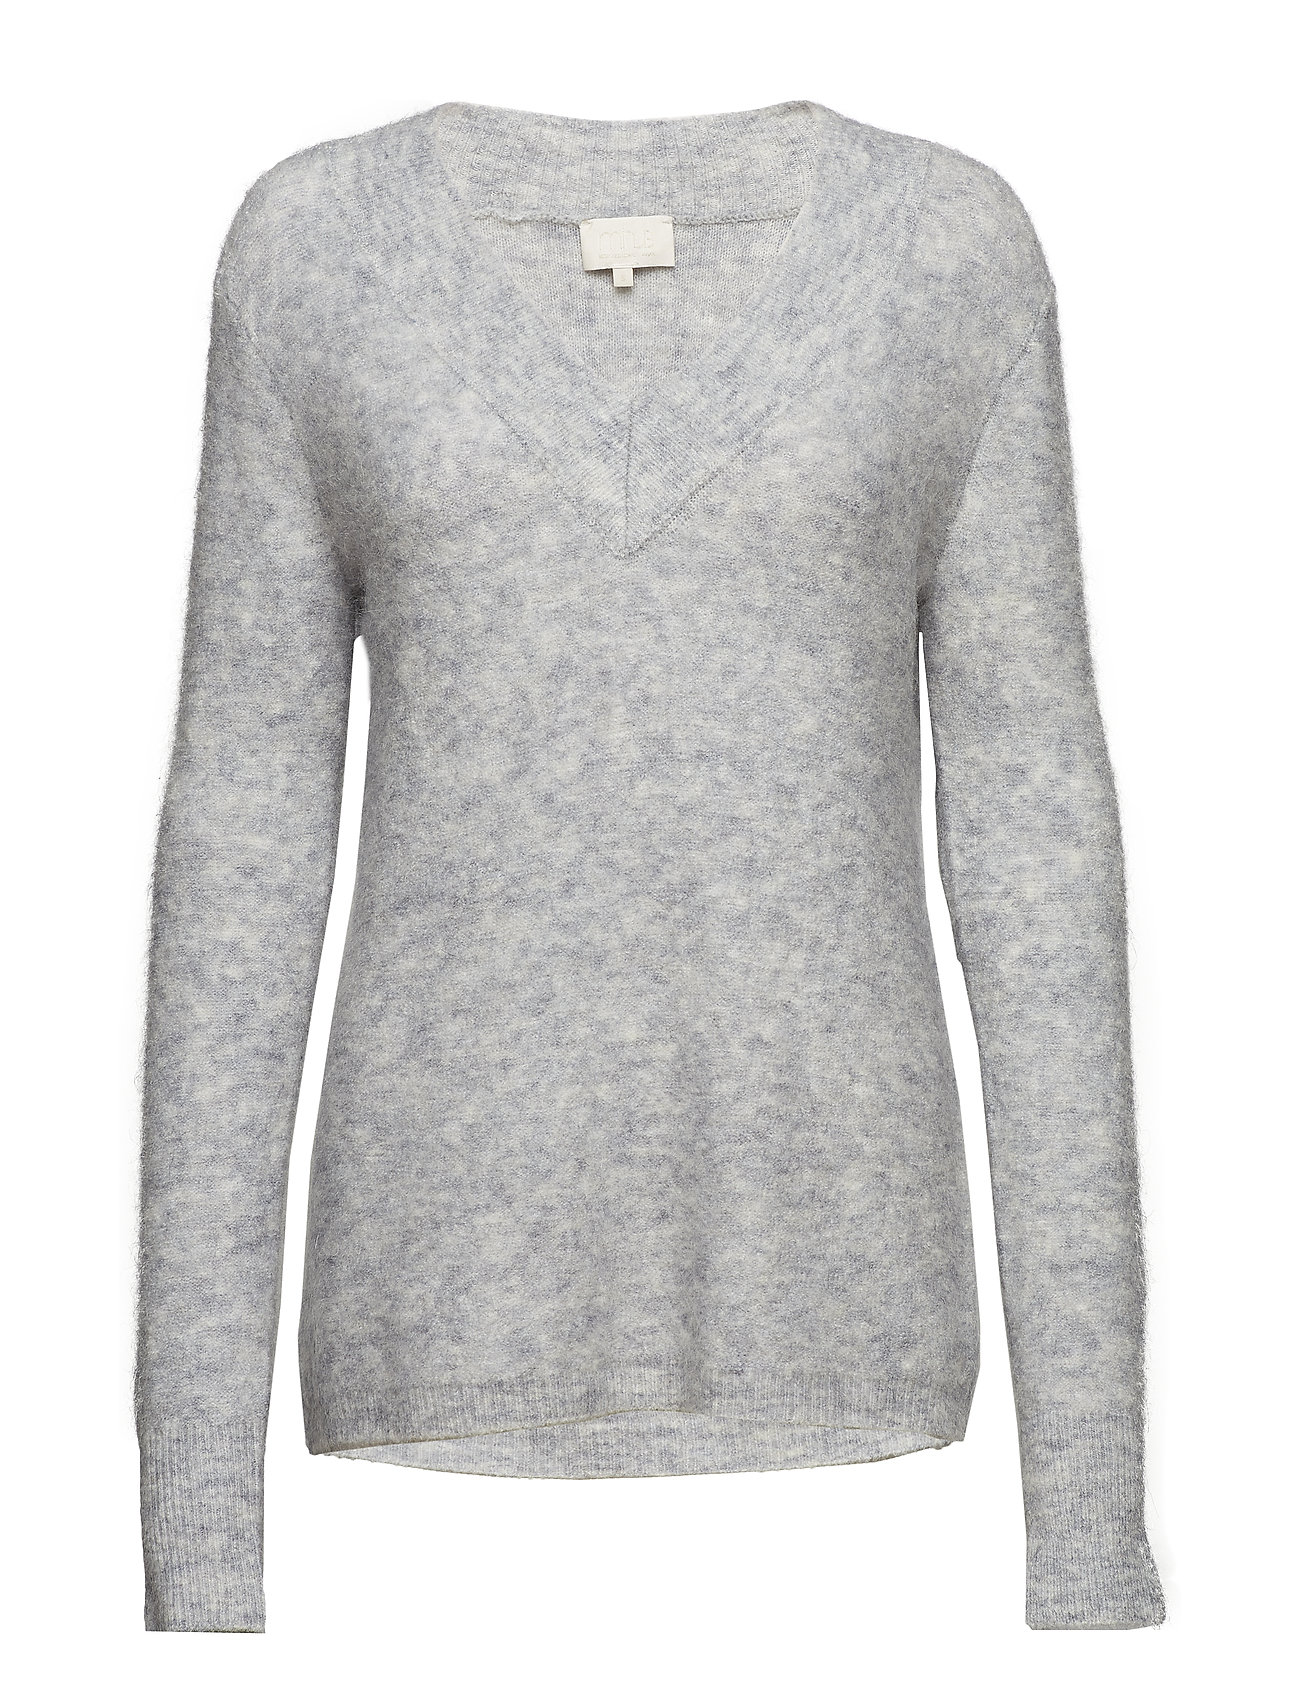 Image of Adora Knit Pullover (3073373805)